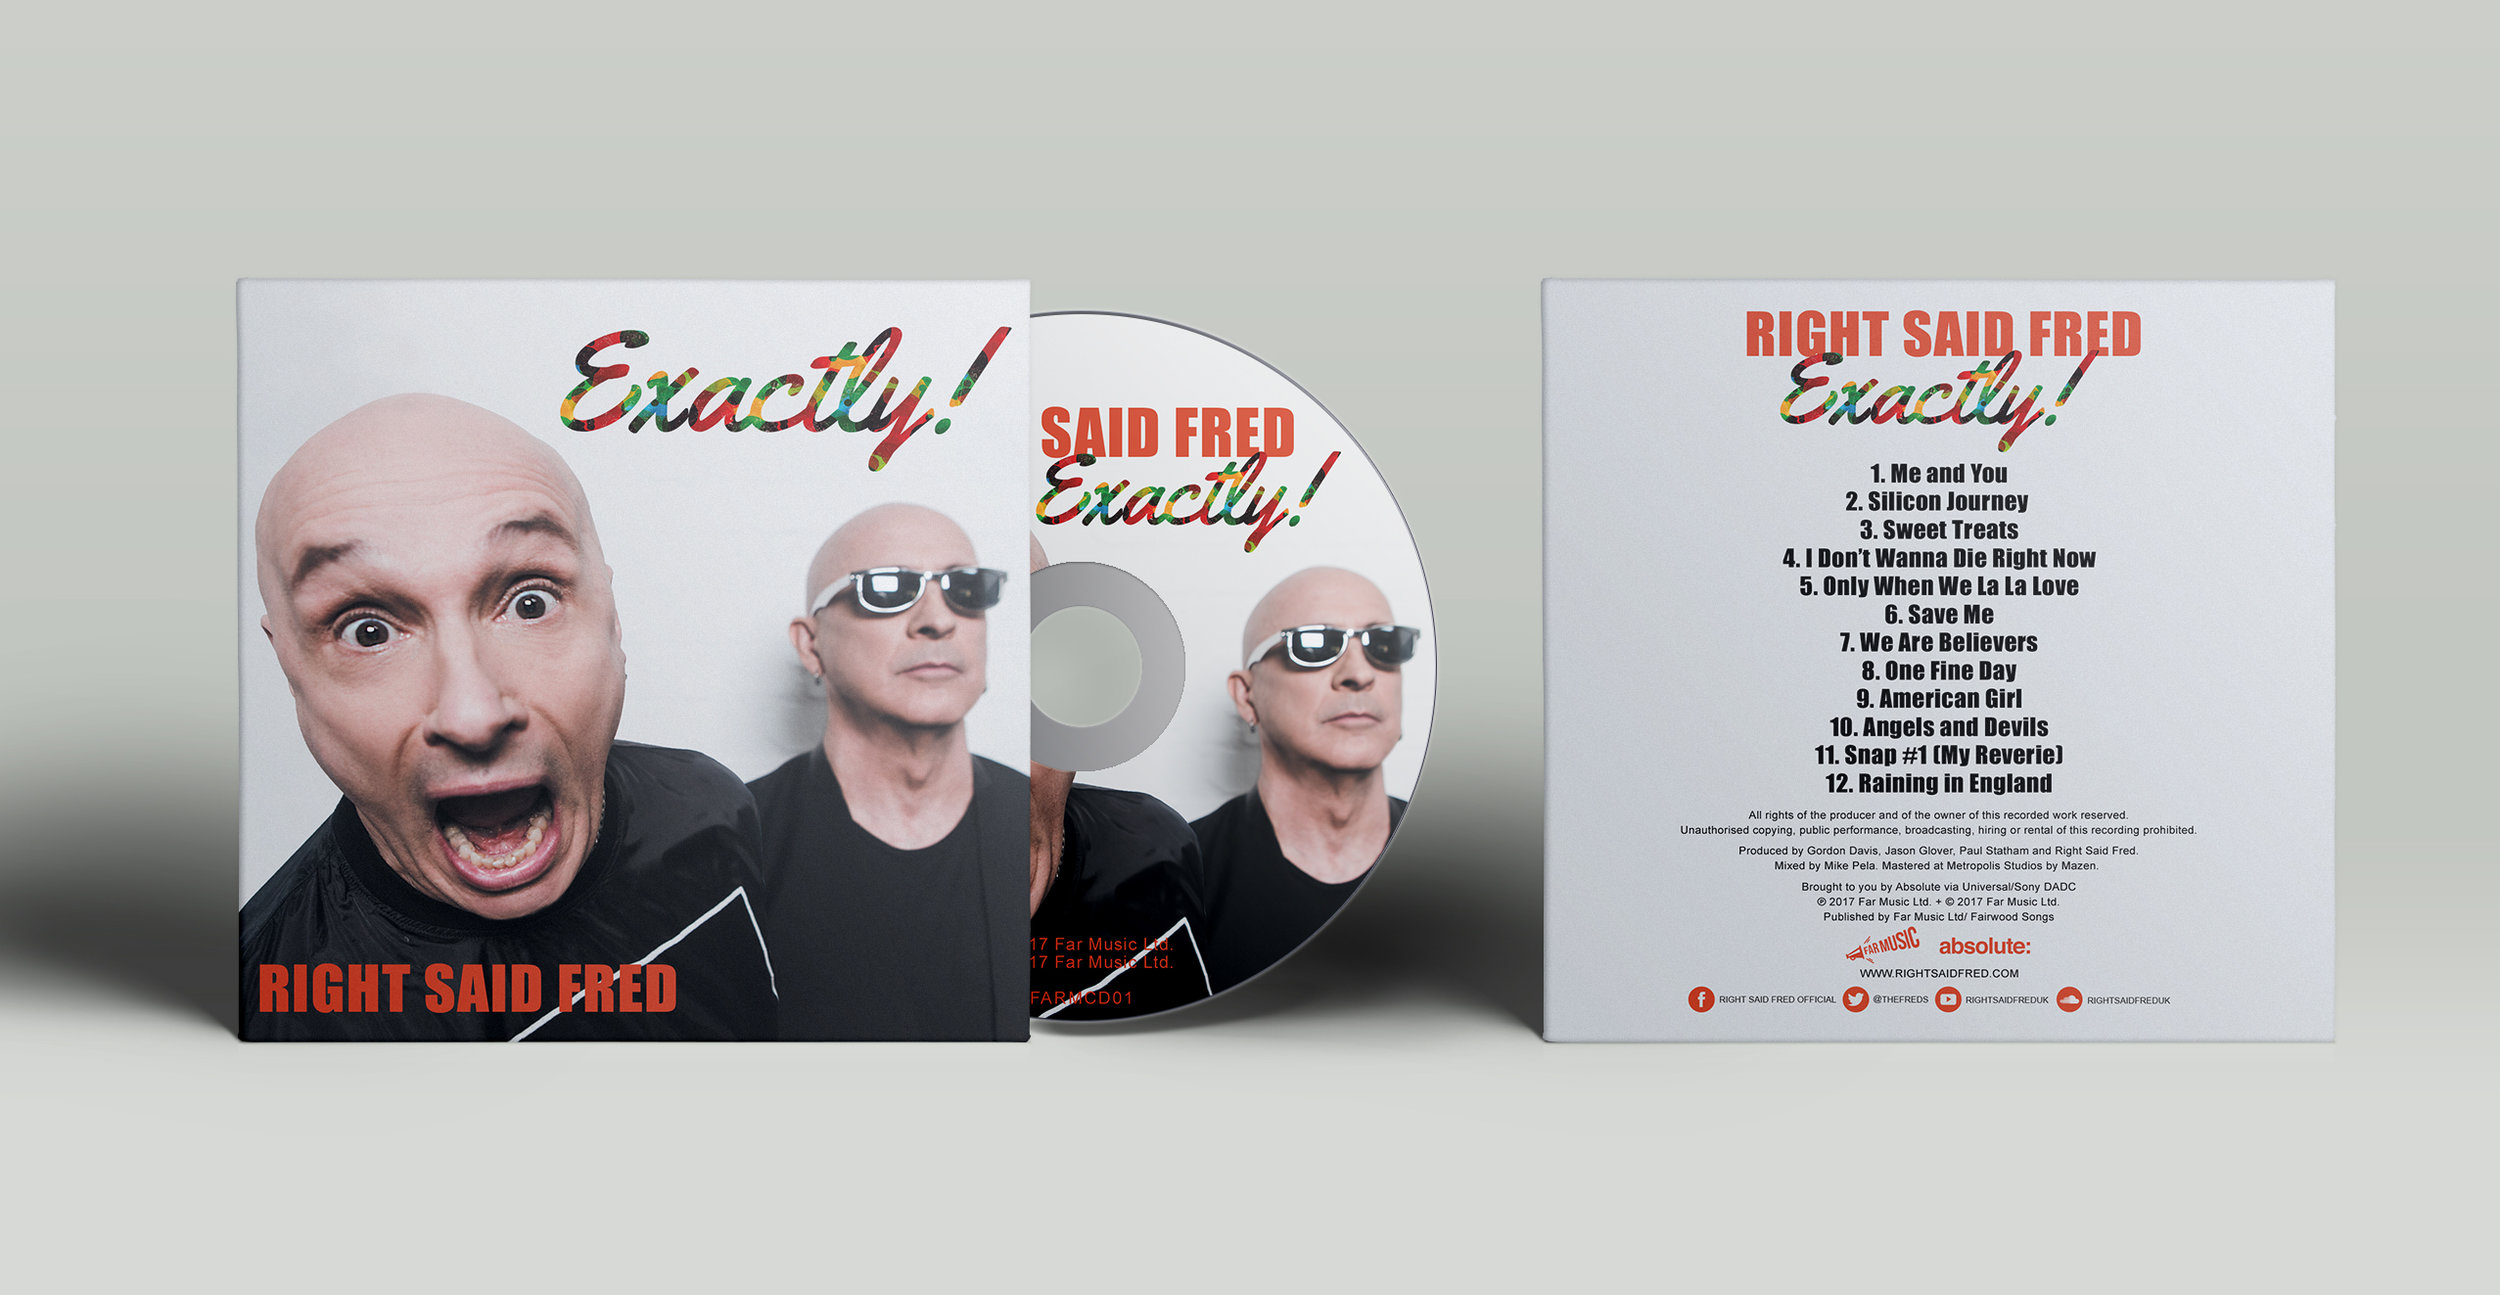 RIGHT SAID FRED 'EXACTLY' ALBUM CD